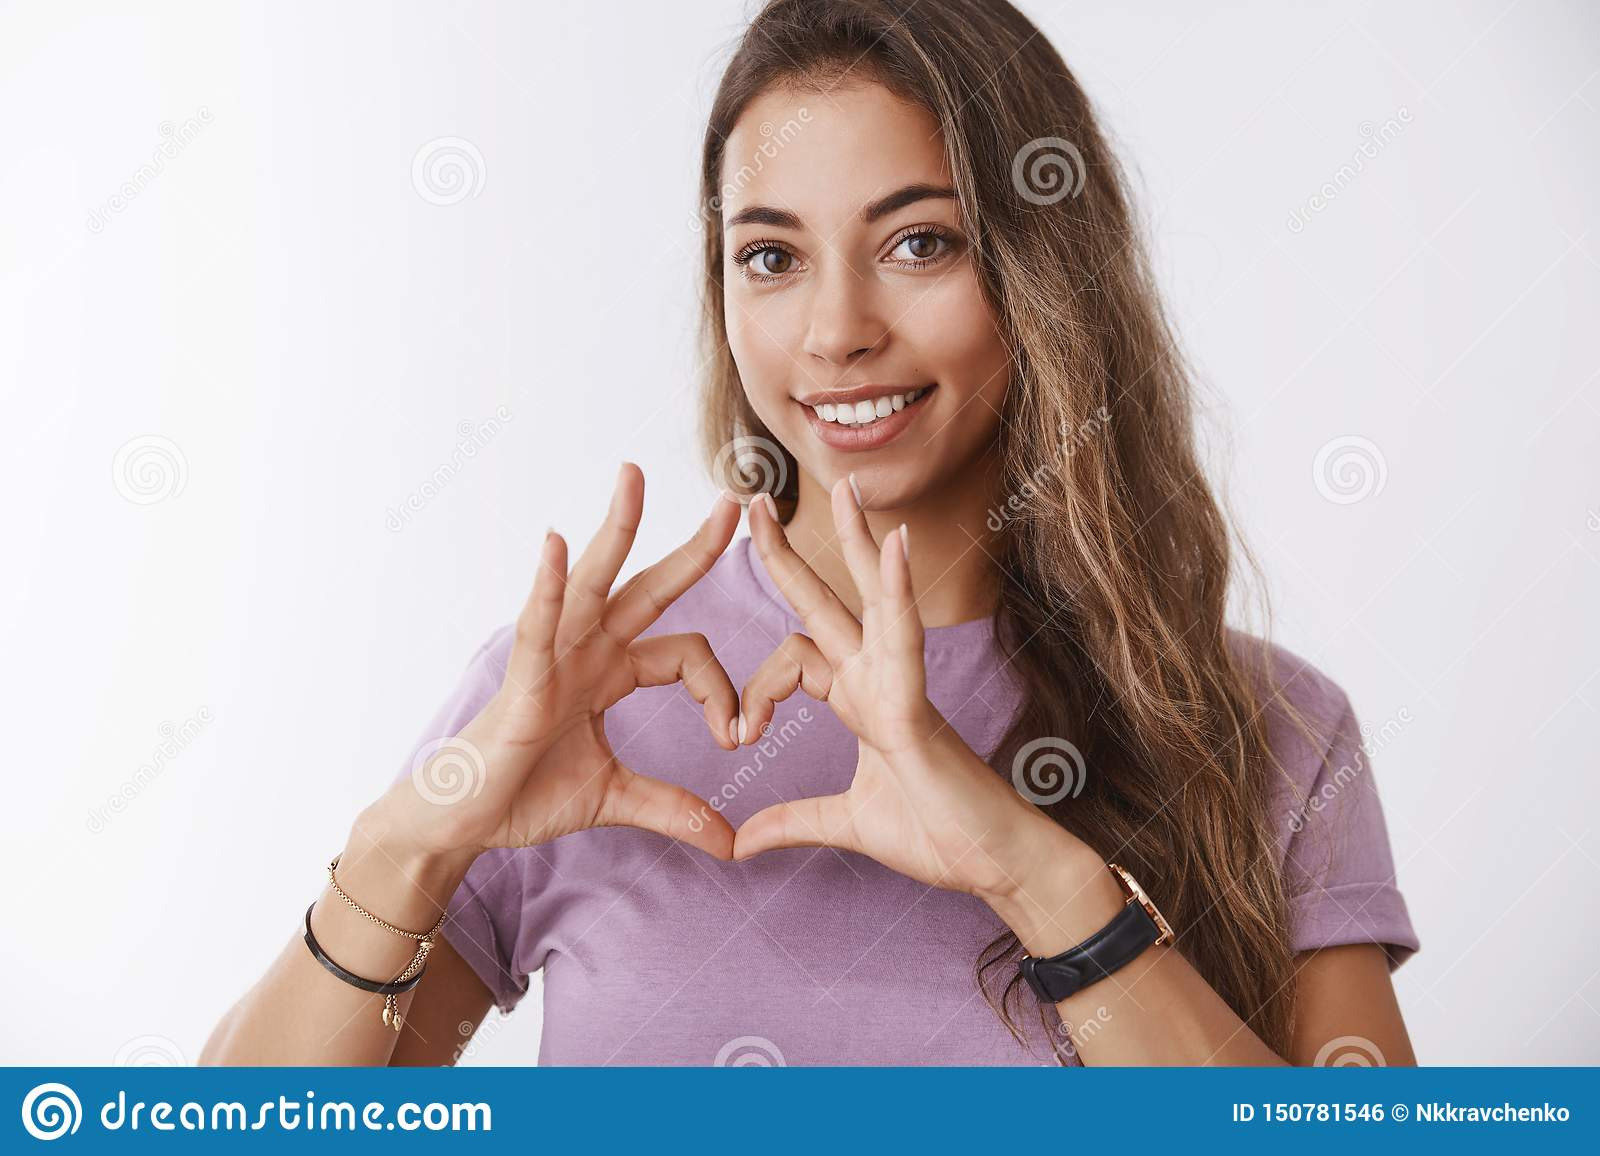 Girl searching key your heart. Attractive feminine tender tanned european woman curly hair, showing love gesture smiling